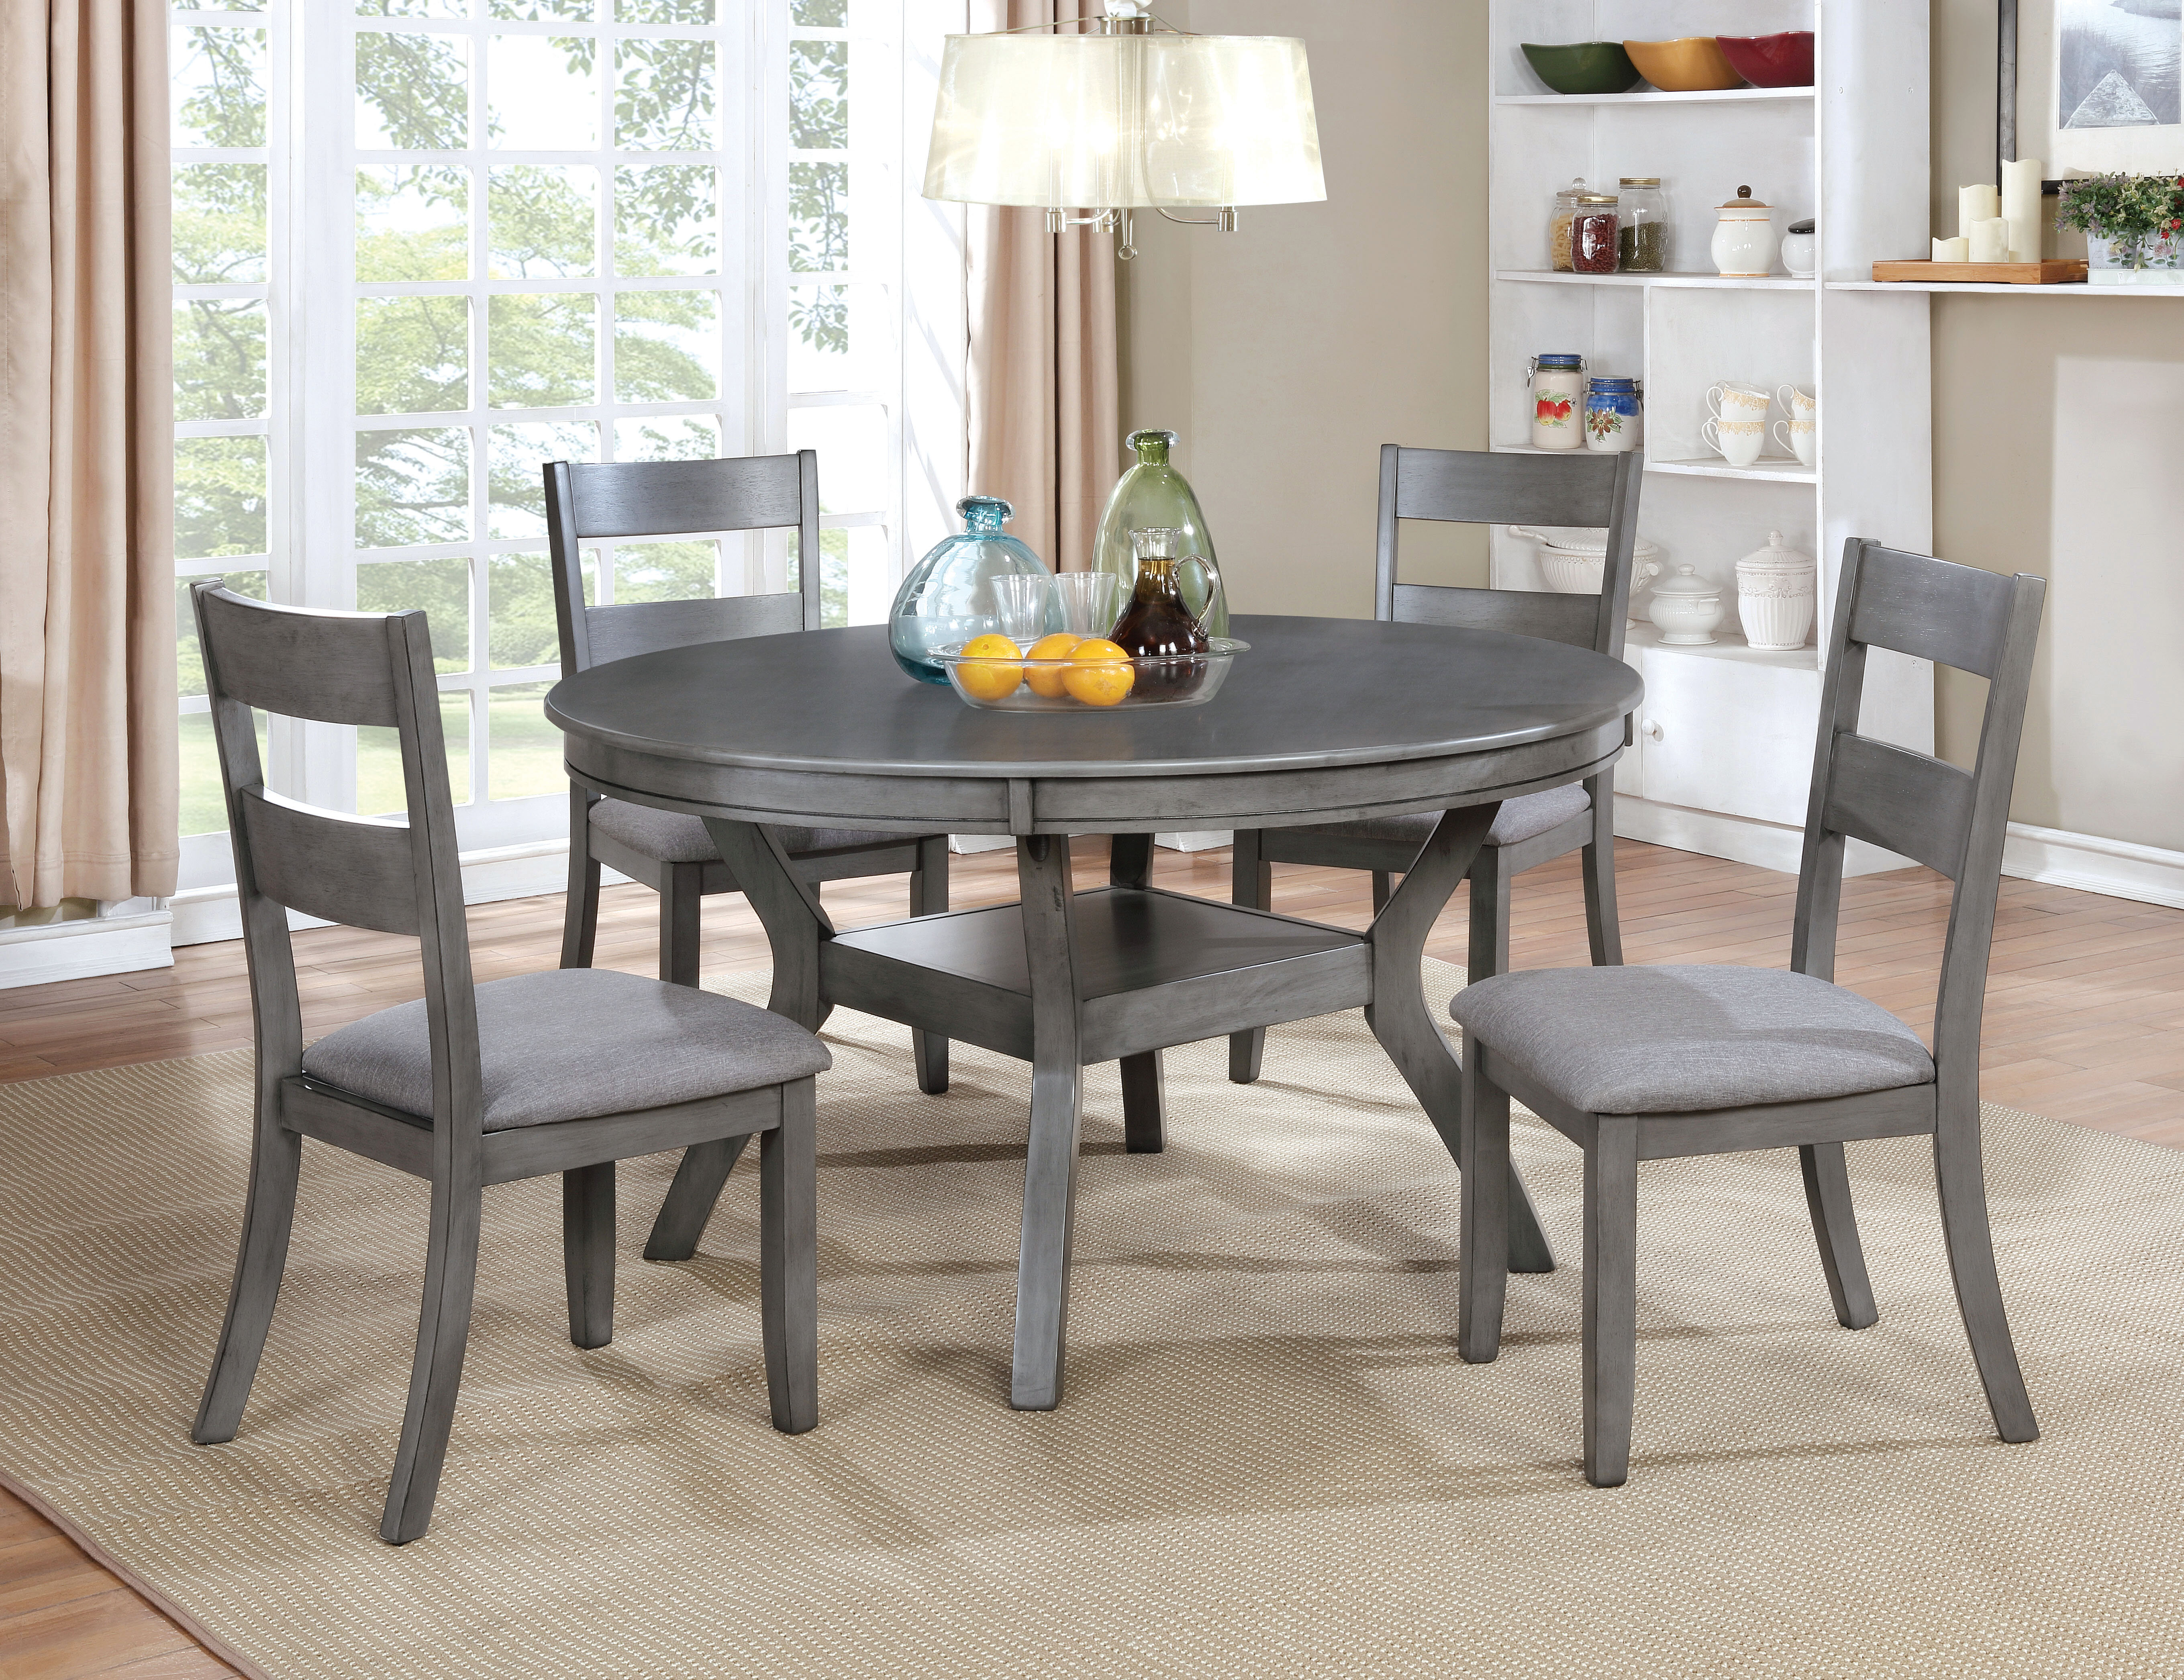 Ordinaire Baumgarten 5 Piece Dining Set